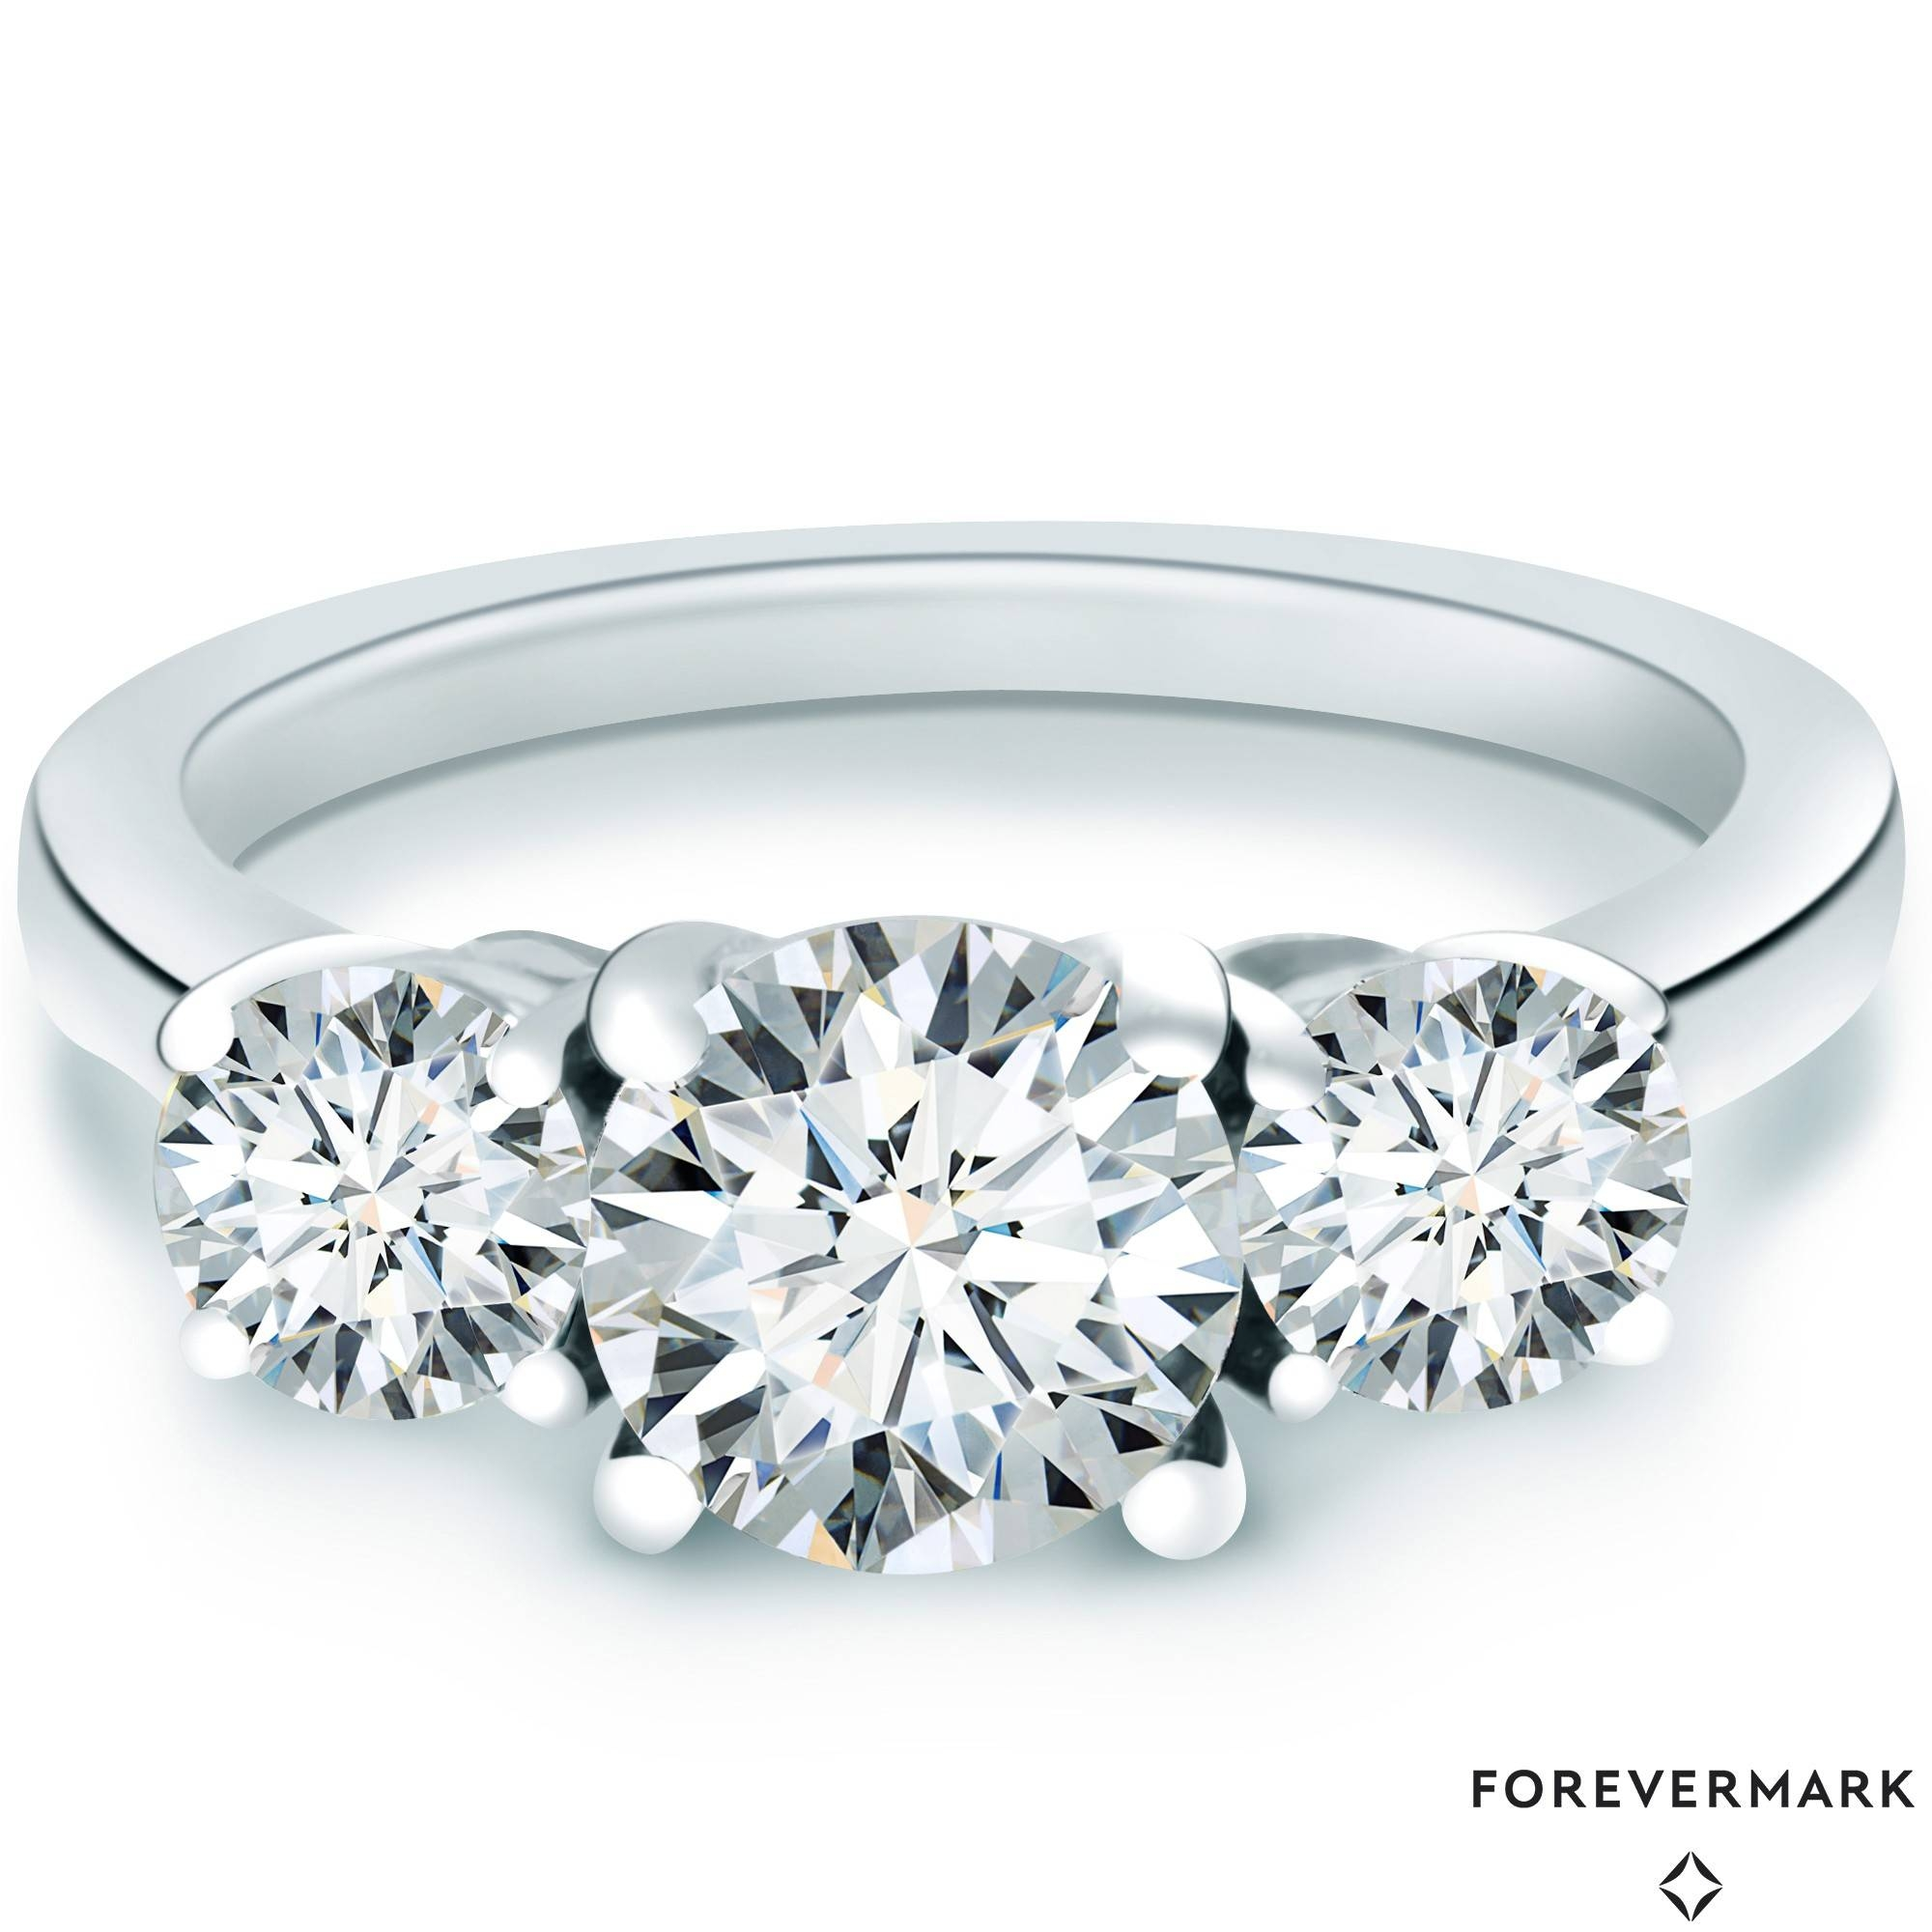 Forevermark Diamond Three Stone Engagement Ring In 18Kt White Gold Within Three Stone Engagement Rings With Side Stones (View 3 of 15)